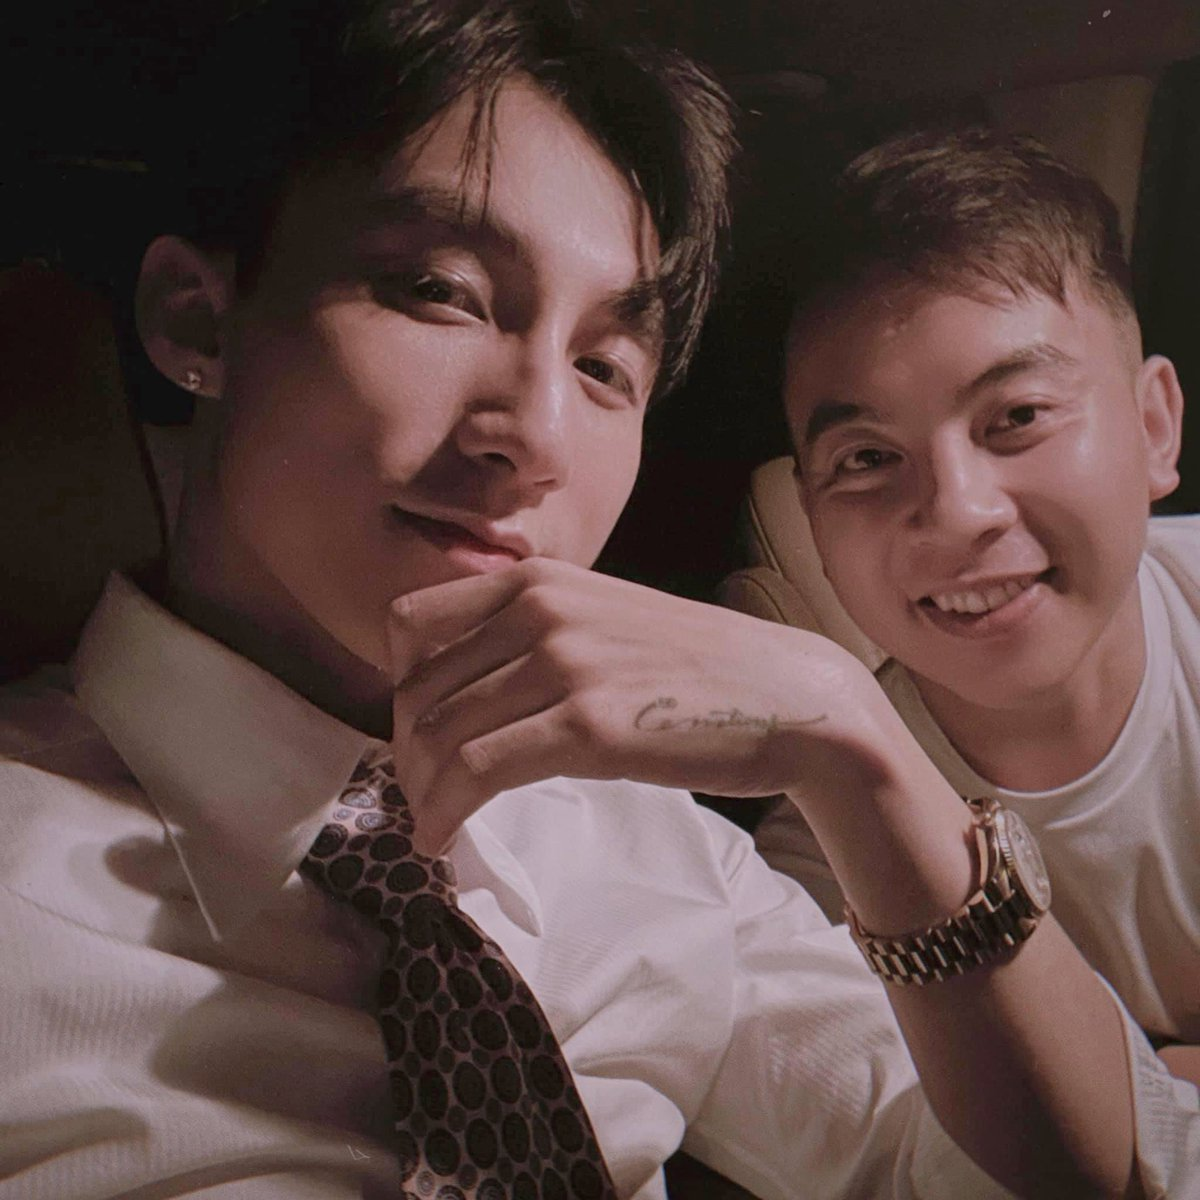 [02/12] Chairman Son Tung M-TP and his friend took a photo on the way home from restaurant 🥰 @sontungmtp777  #SonTungMTP #MTPEntertainment #Vpop #music #musician #rap #hiphop #ArtistOnTwitter #PhotoOfTheDay #PicOfTheDay #cool #handsome #cute #Instagram #instagood #travel #selfie https://t.co/i3CZkxqL8R